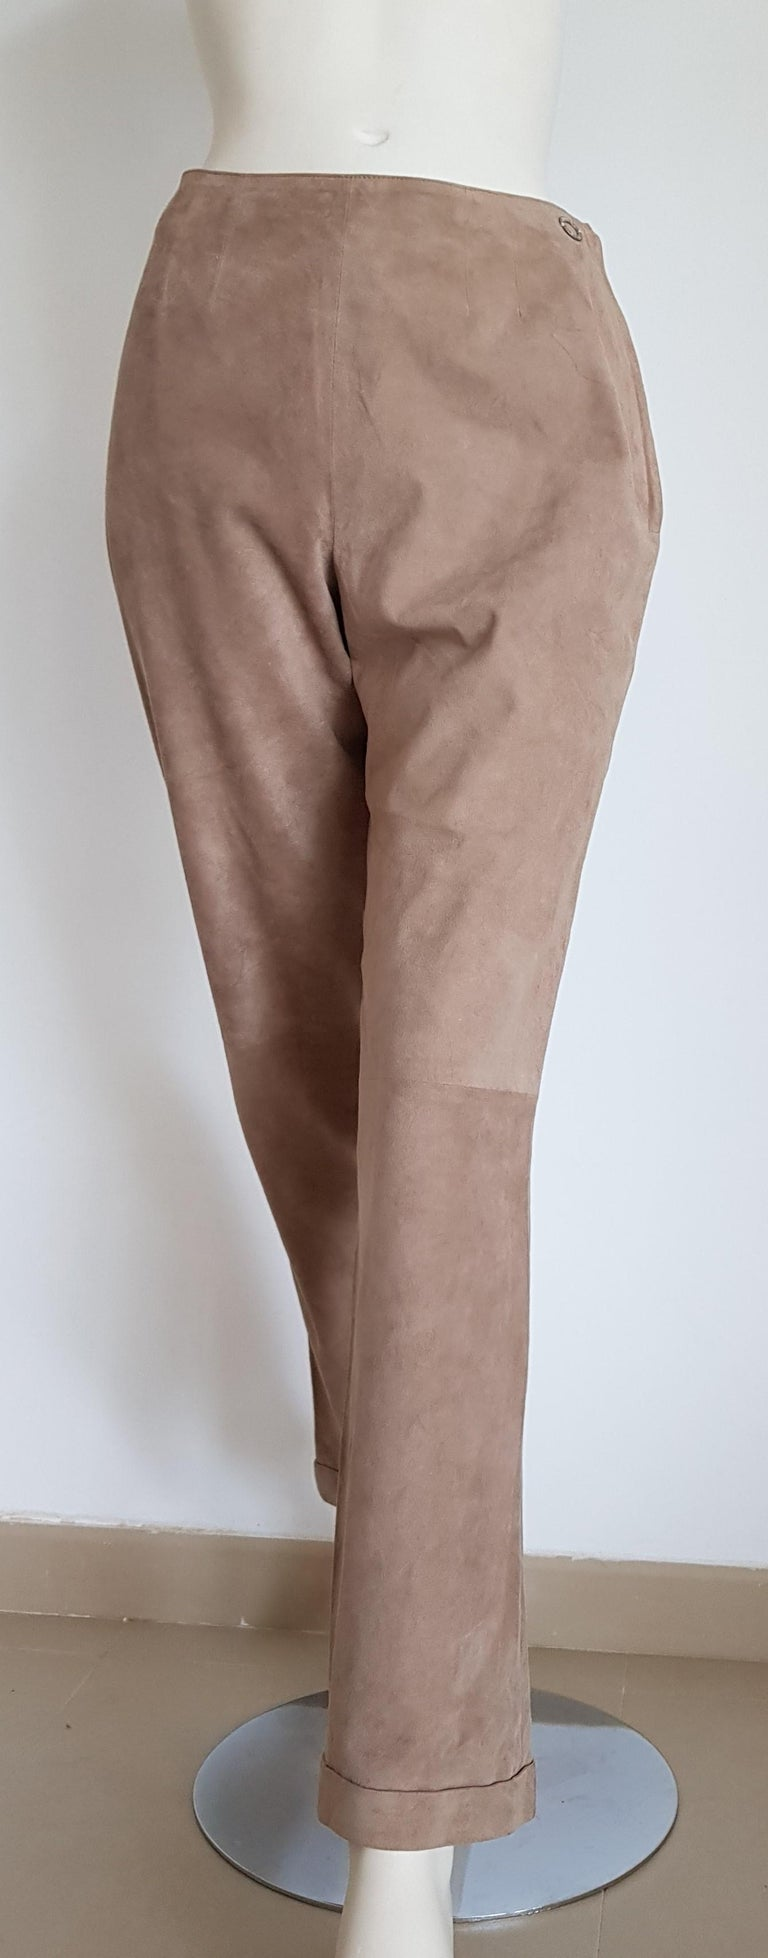 CHANEL beige suede pants silk lined - Unworn, New.  SIZE: equivalent to about Small / Medium, please review approx measurements as follows in cm. PANTS: lenght 99, inseam length 72, waist circumference 75, hip circumference 96, leg hem circumference